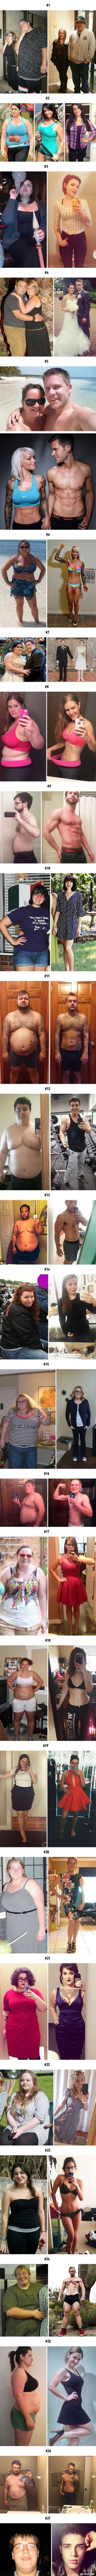 27 Dramatic Weight-Loss Photos Showing What Willpower Can Do